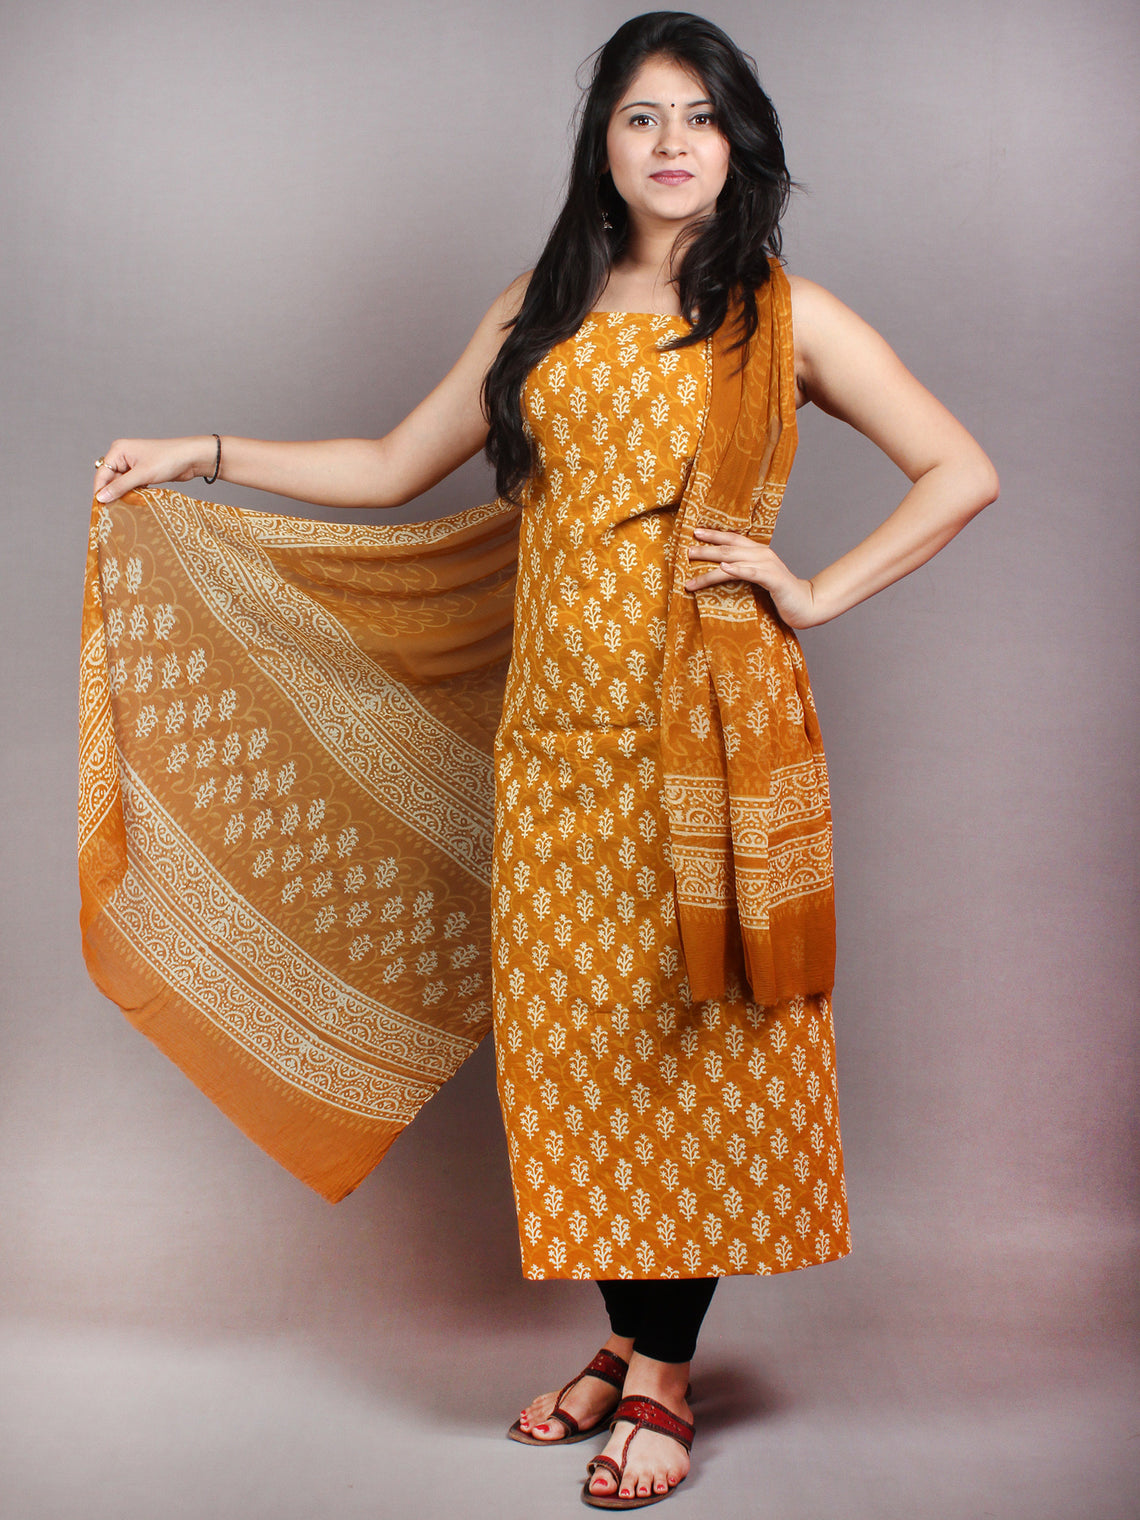 GoldenRod Yellow White Hand Block Printed Cotton Suit-Salwar Fabric With Chiffon Dupatta - S1628047